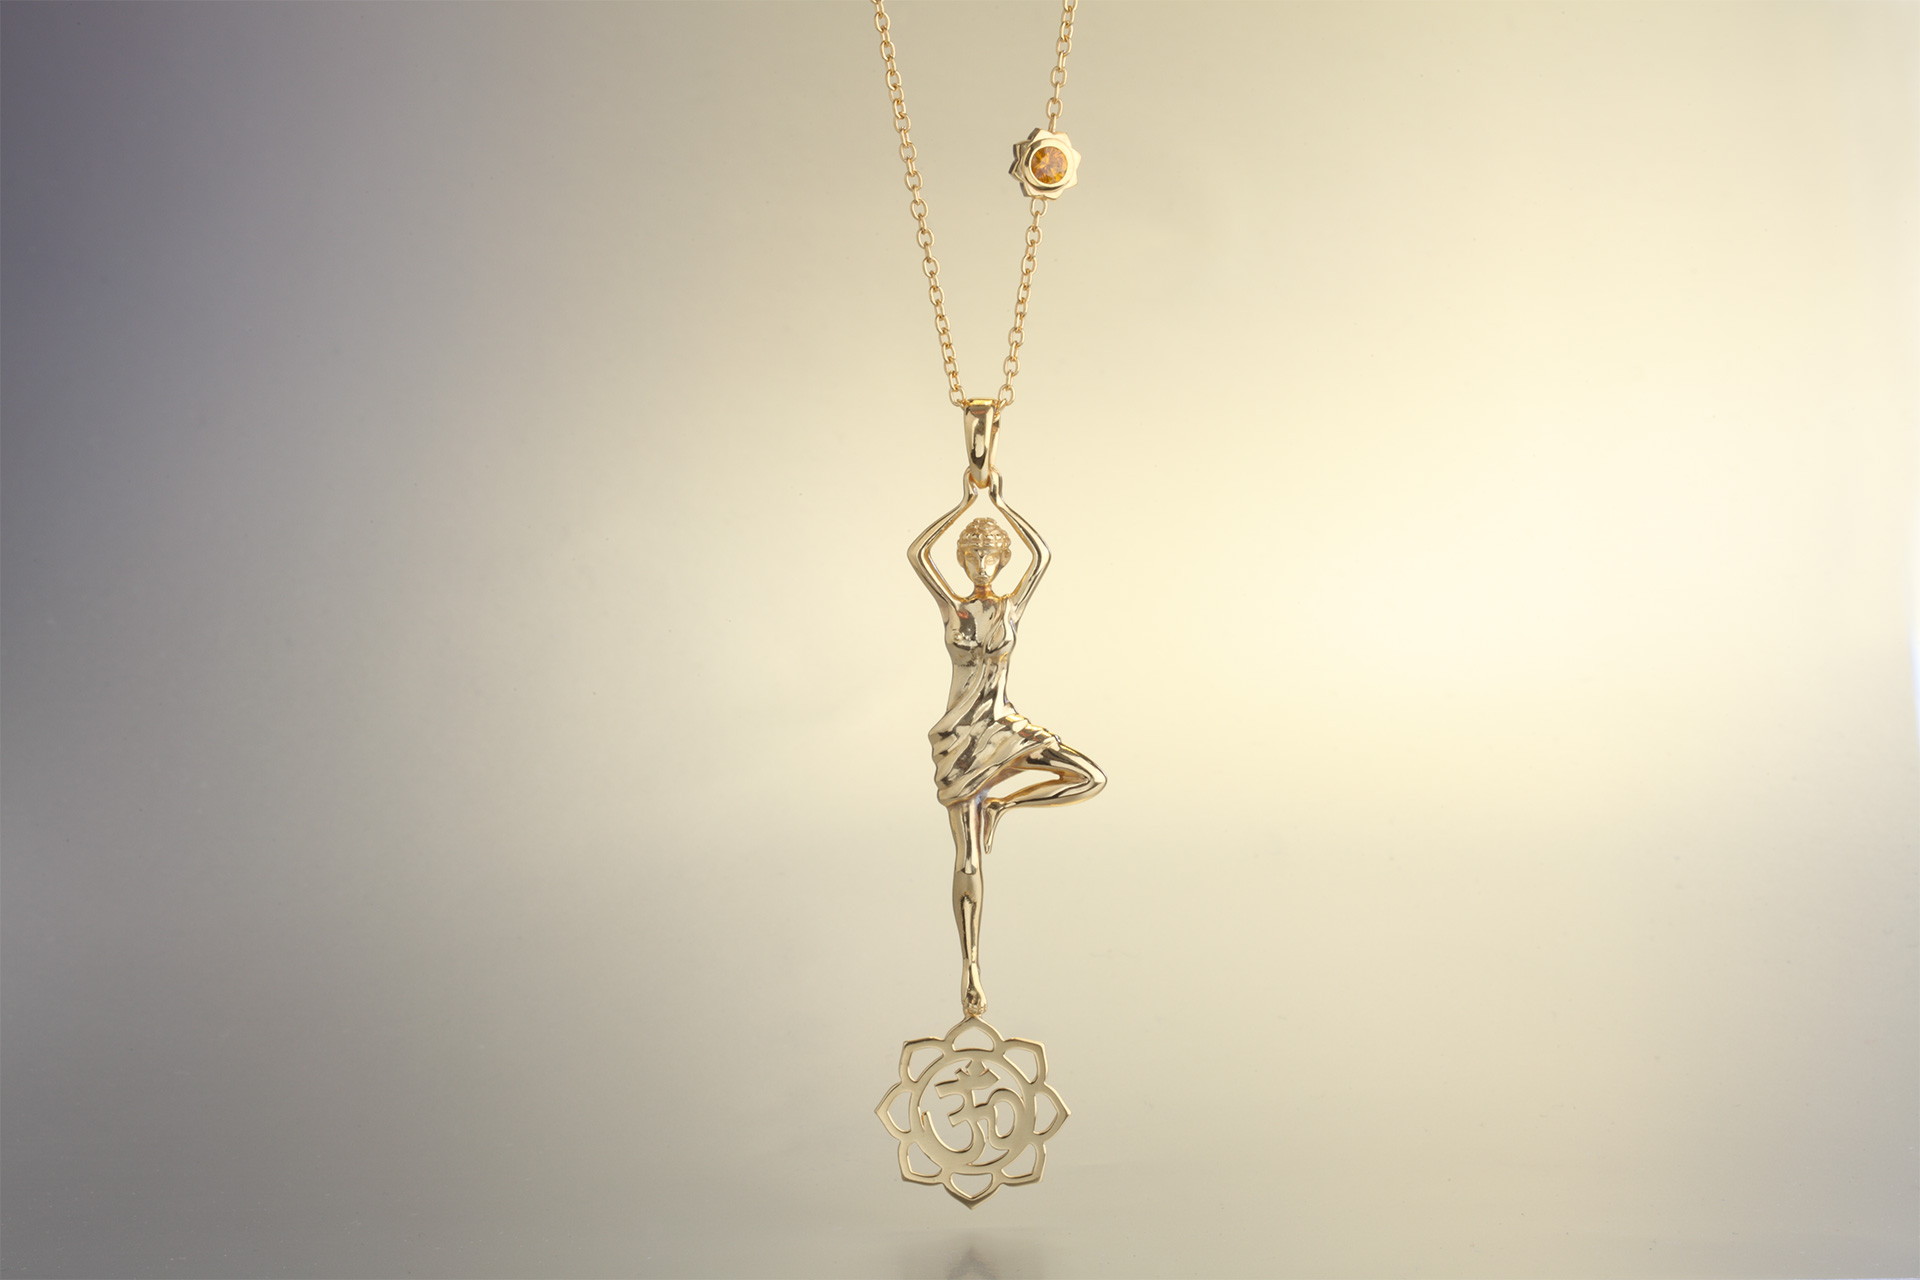 Vrksasana pendant in yellow gold - Maria Kovadi